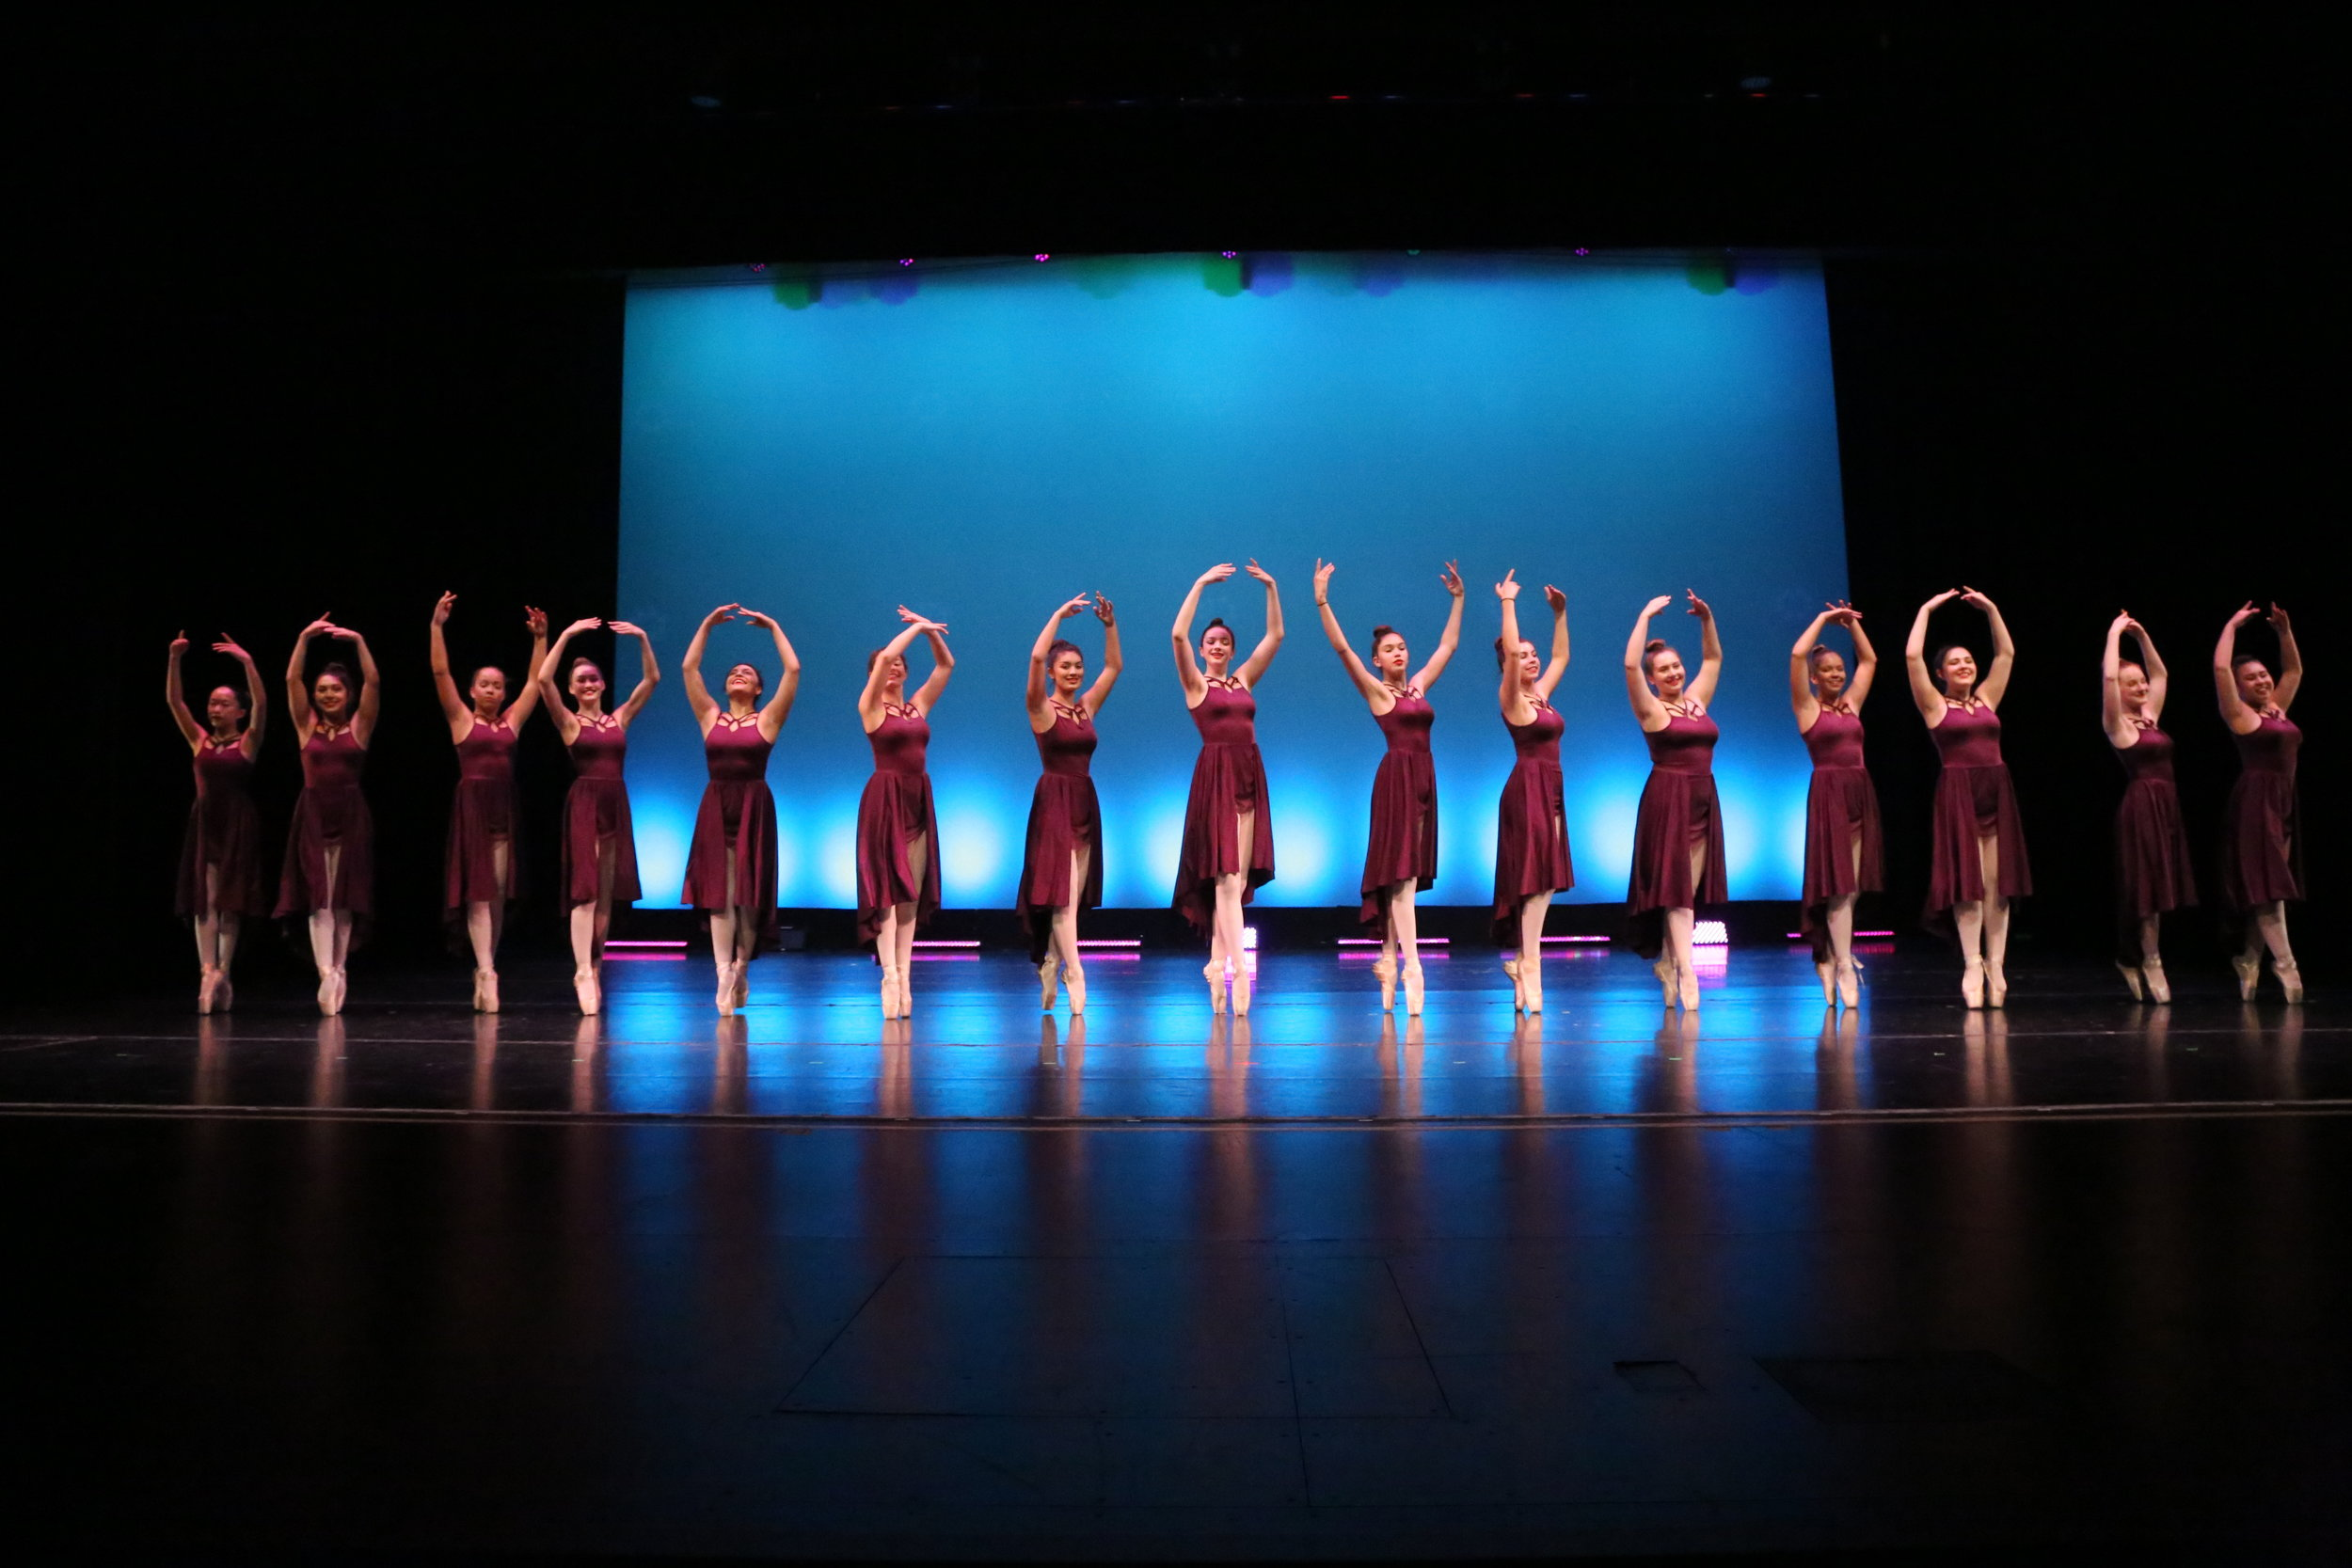 Performing in a full scale dance production teaches valuable lessons of self-confidence, memorization, energy, stamina, focus, organization and most of all, teamwork -